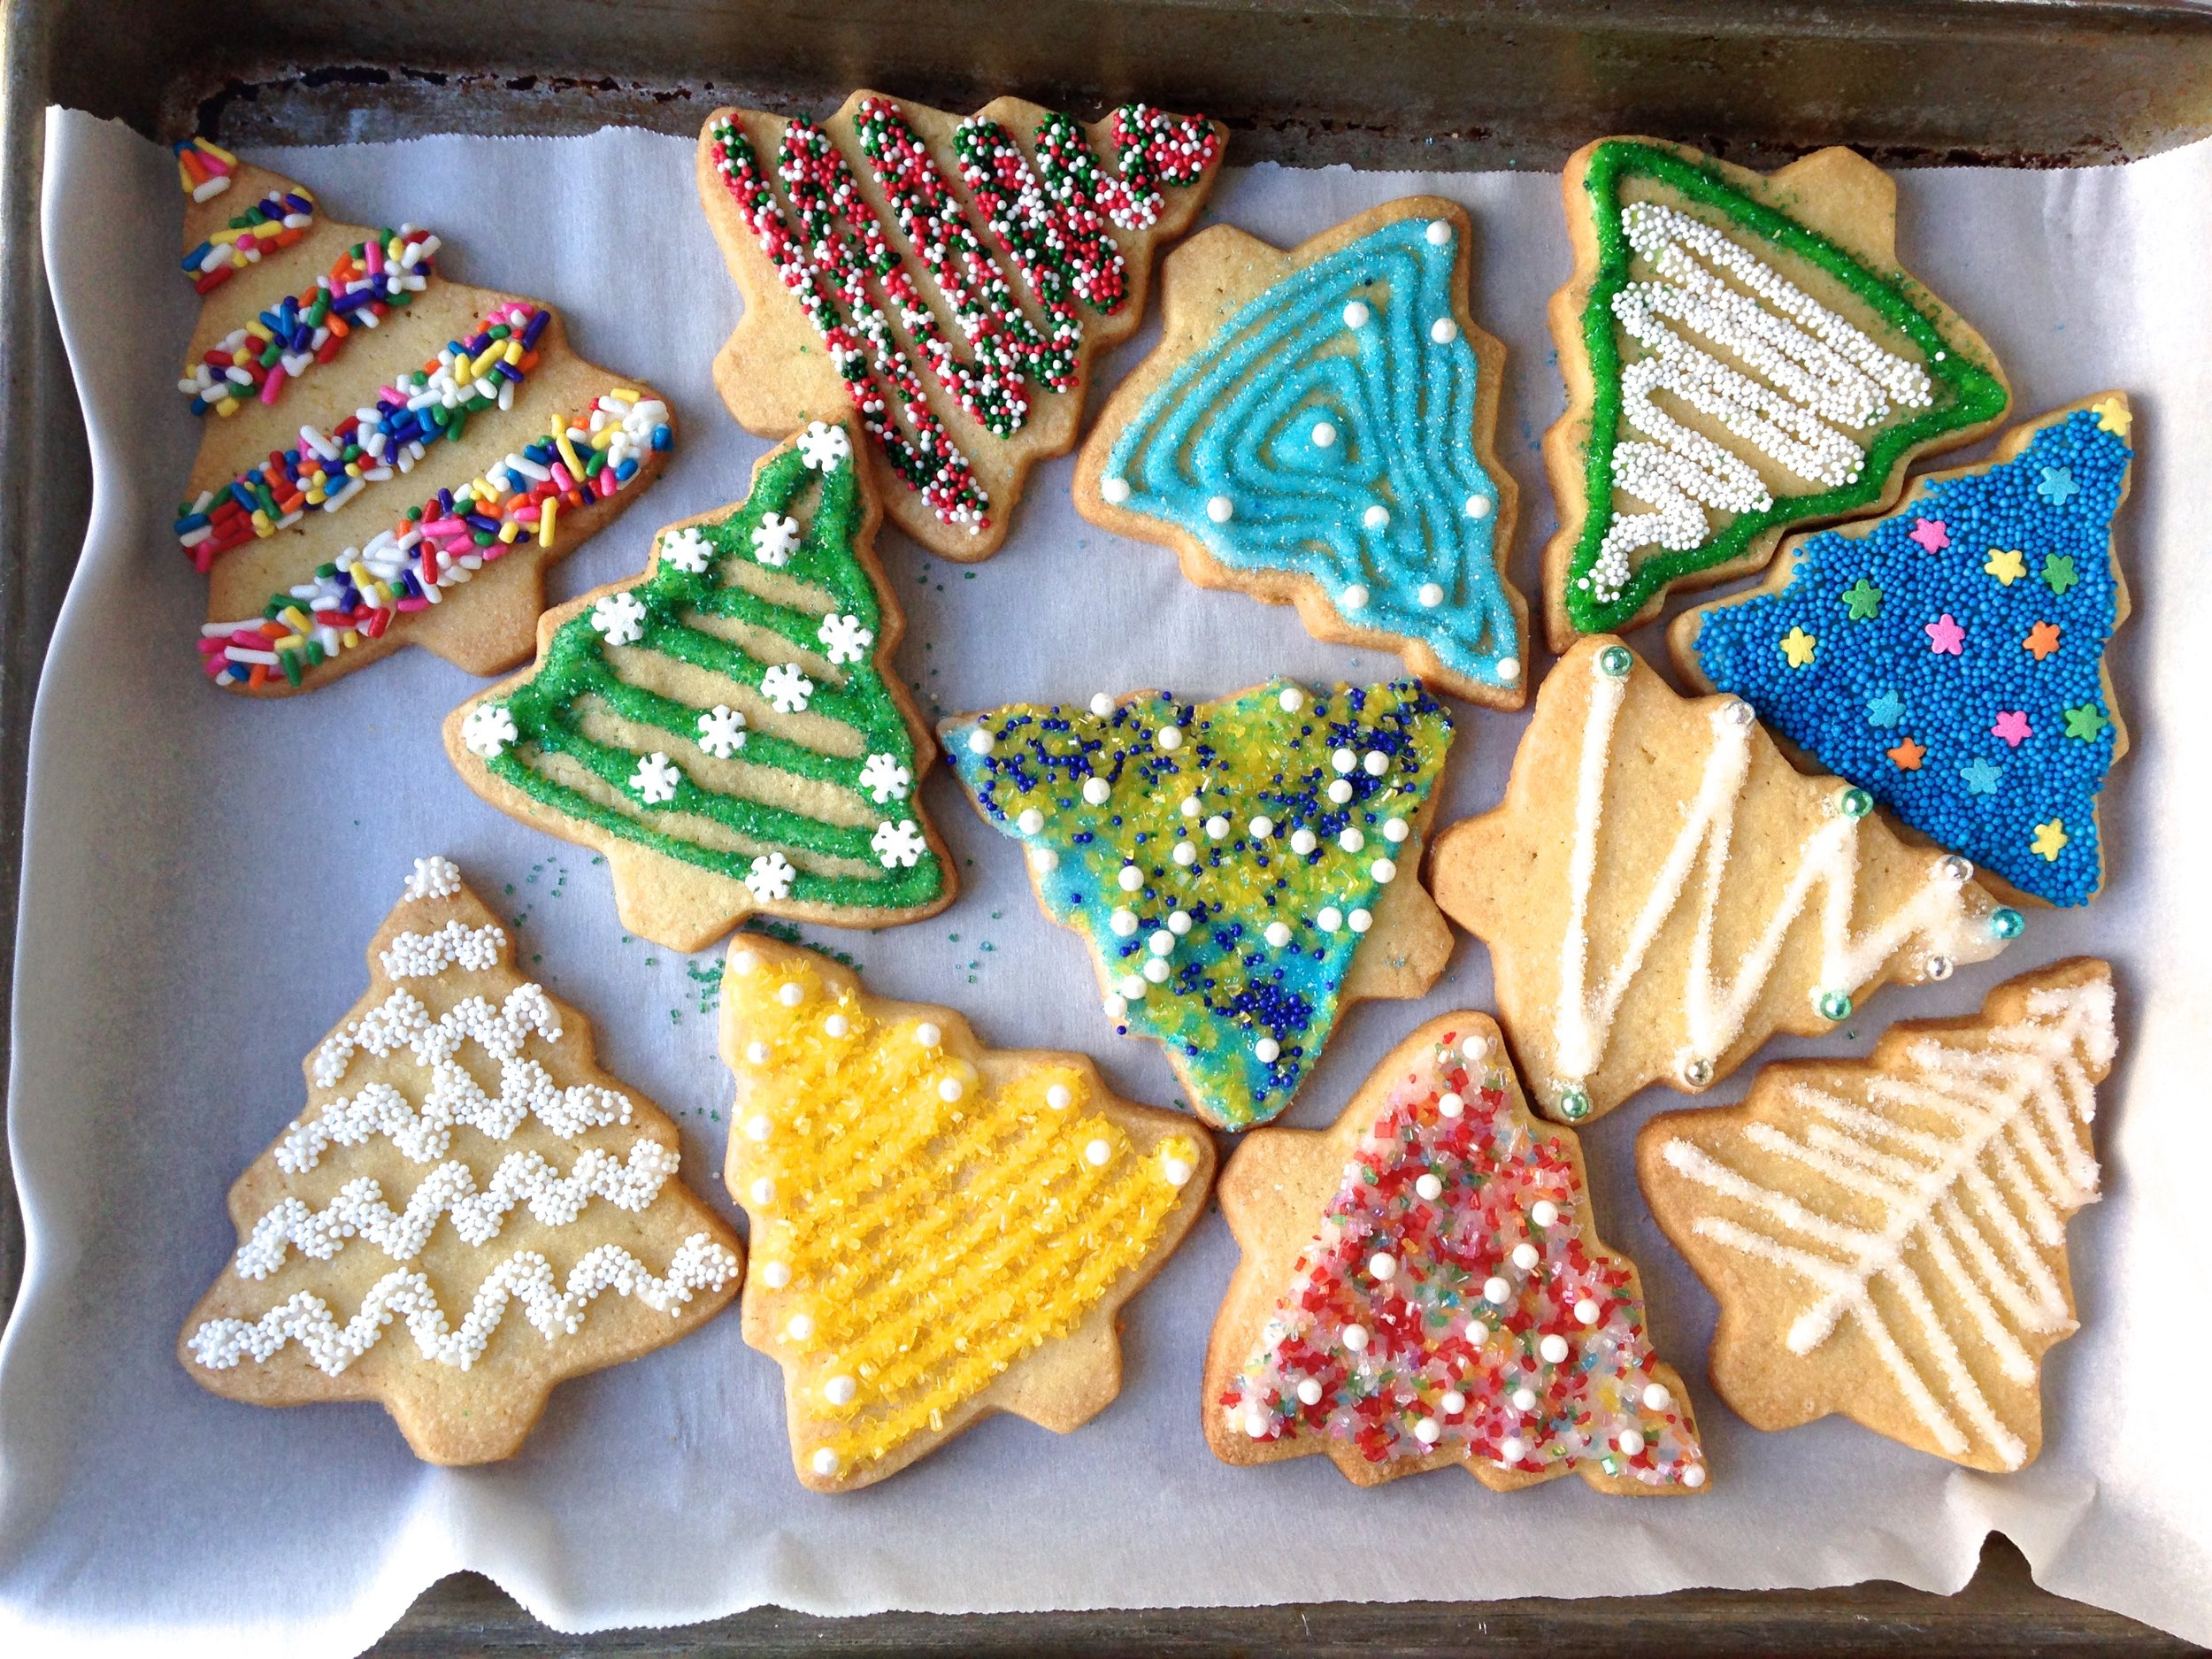 sugar-cookie-inspiration.jpg